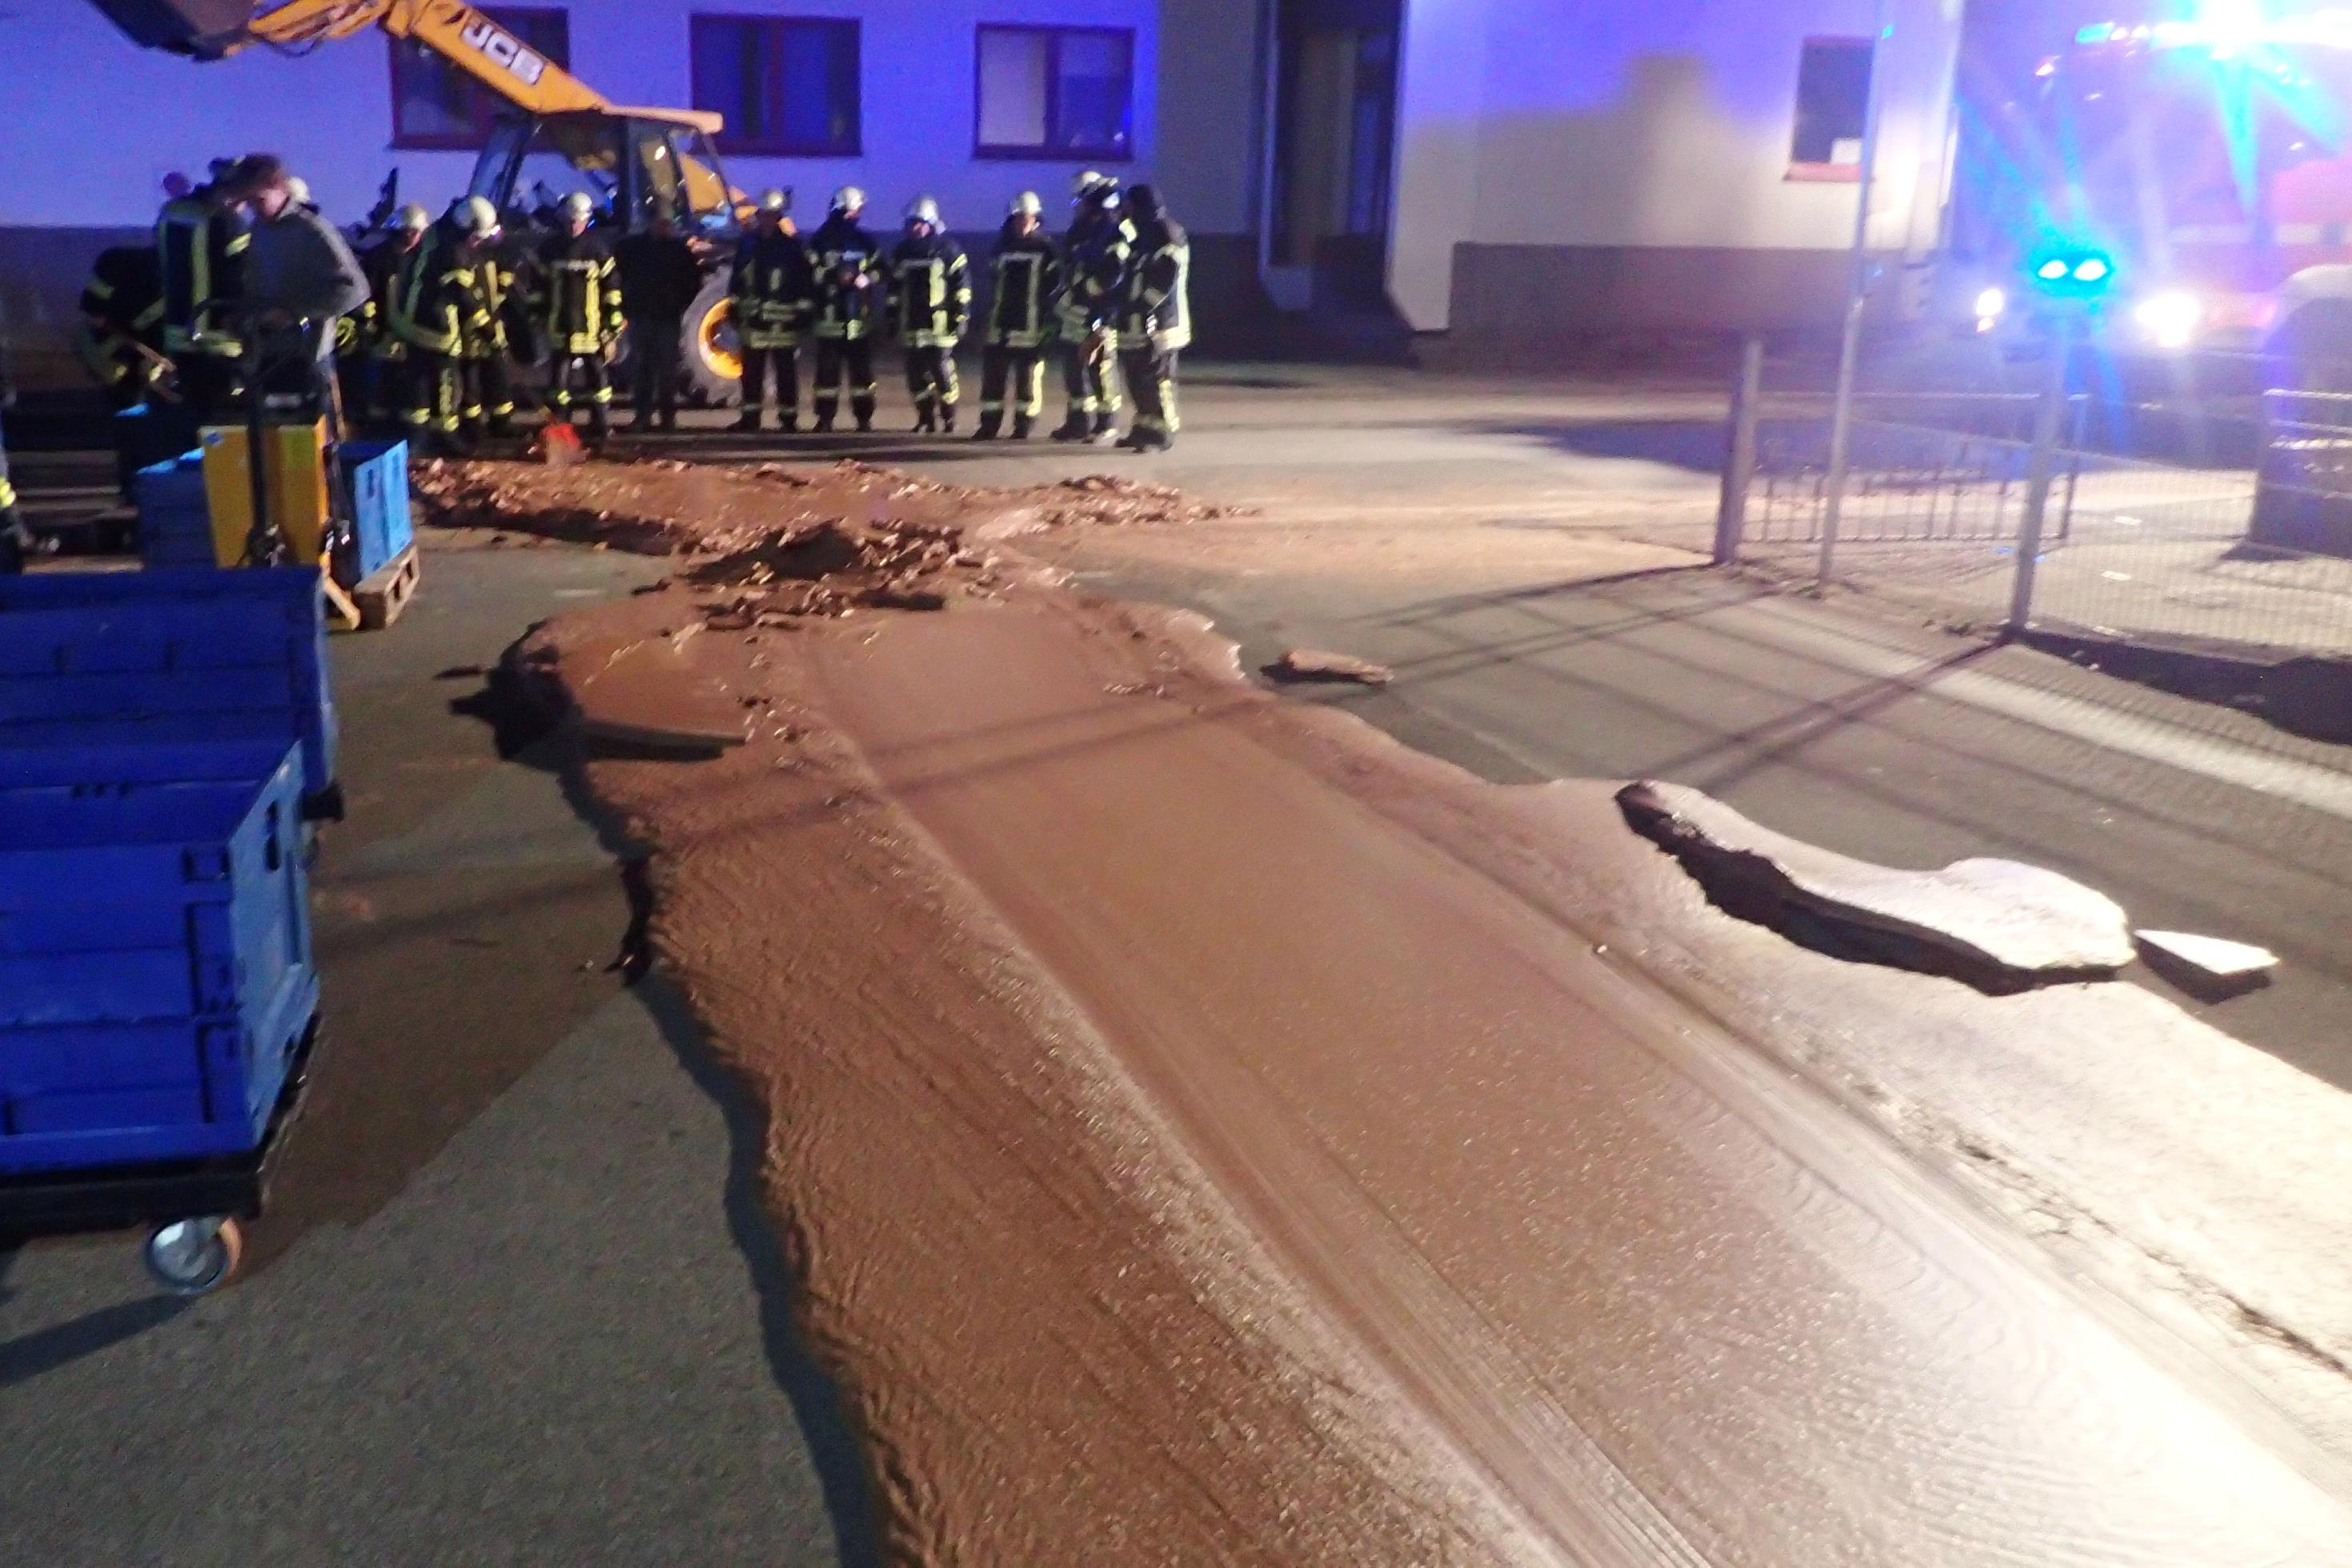 German chocolate factory spill turns street into Willy Wonka Way ...